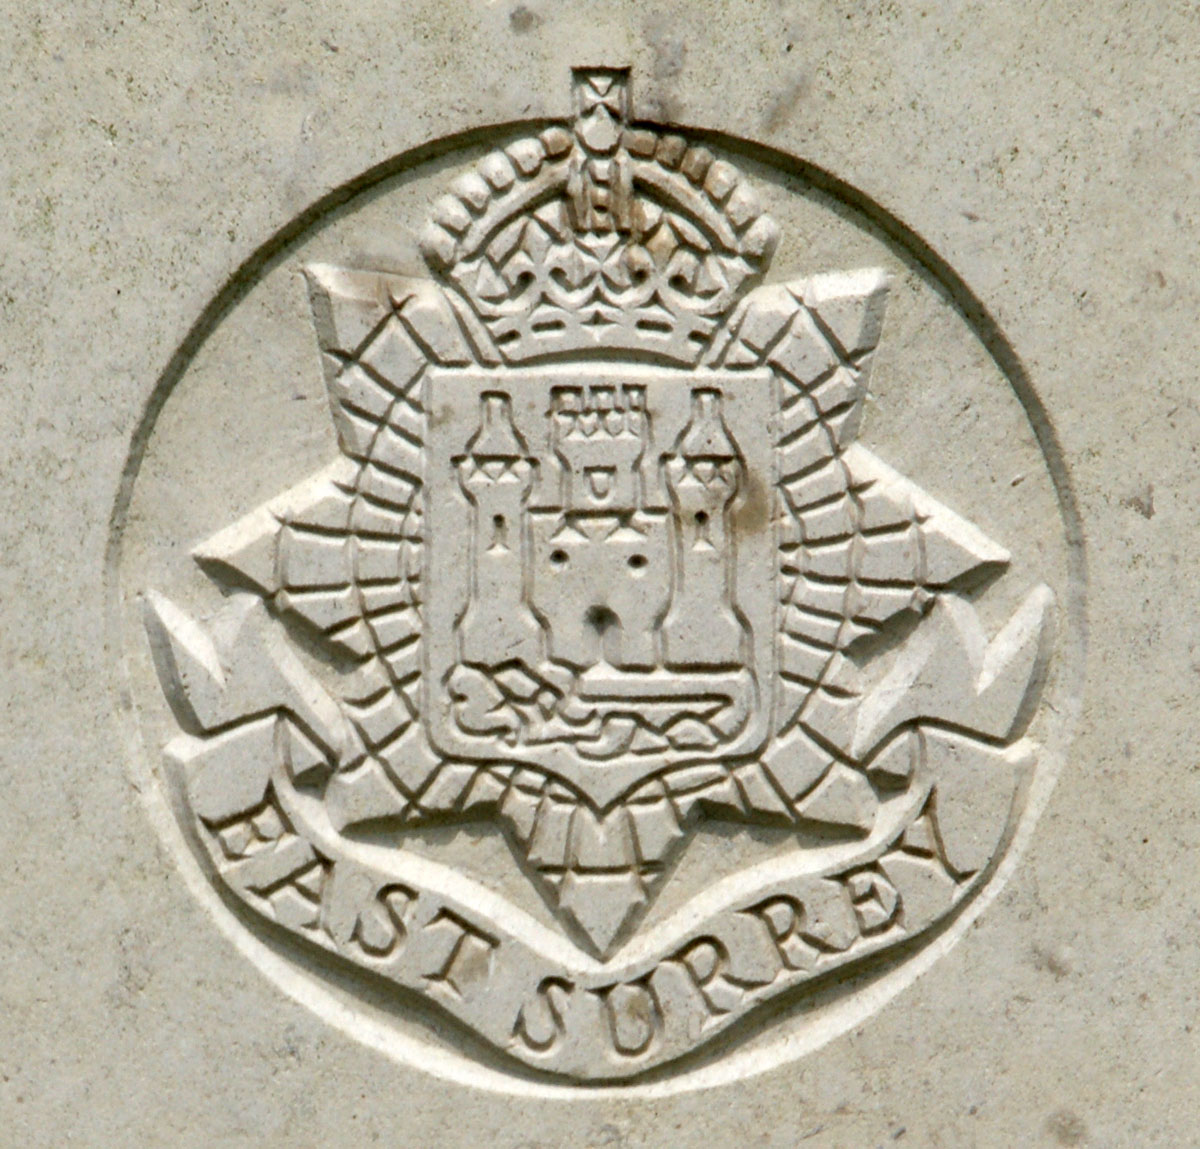 East Surrey Regiment badge